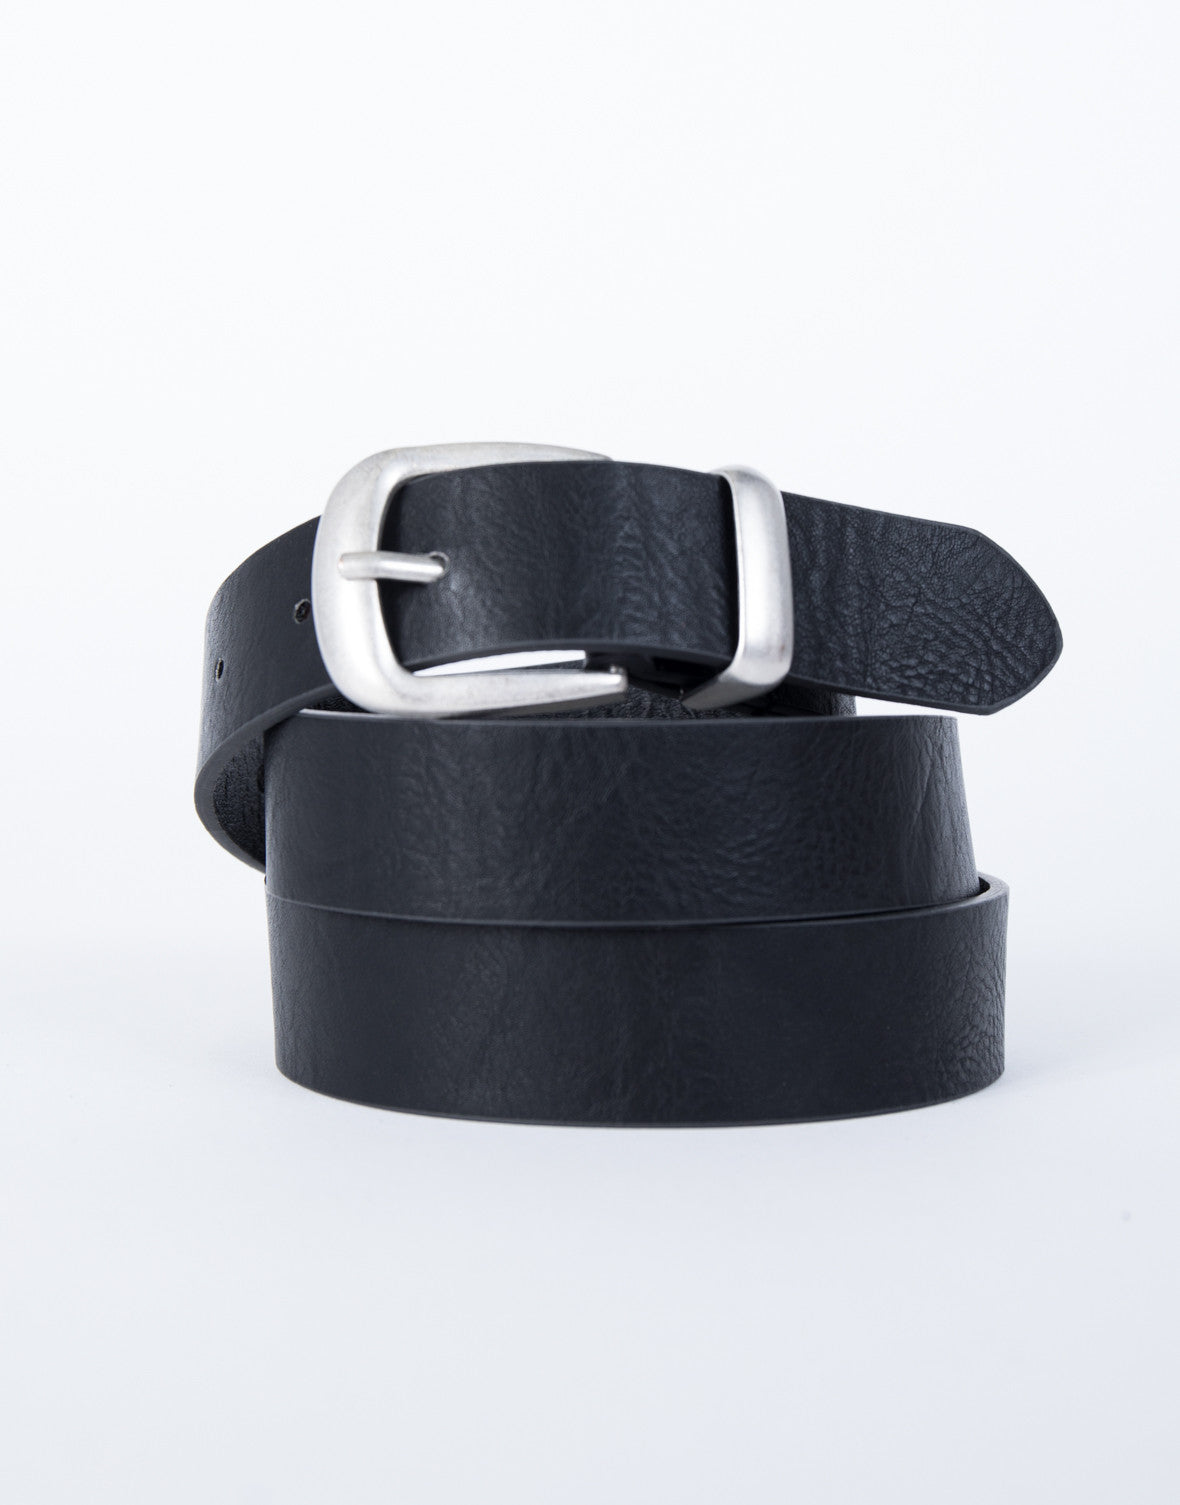 The Essential Belt